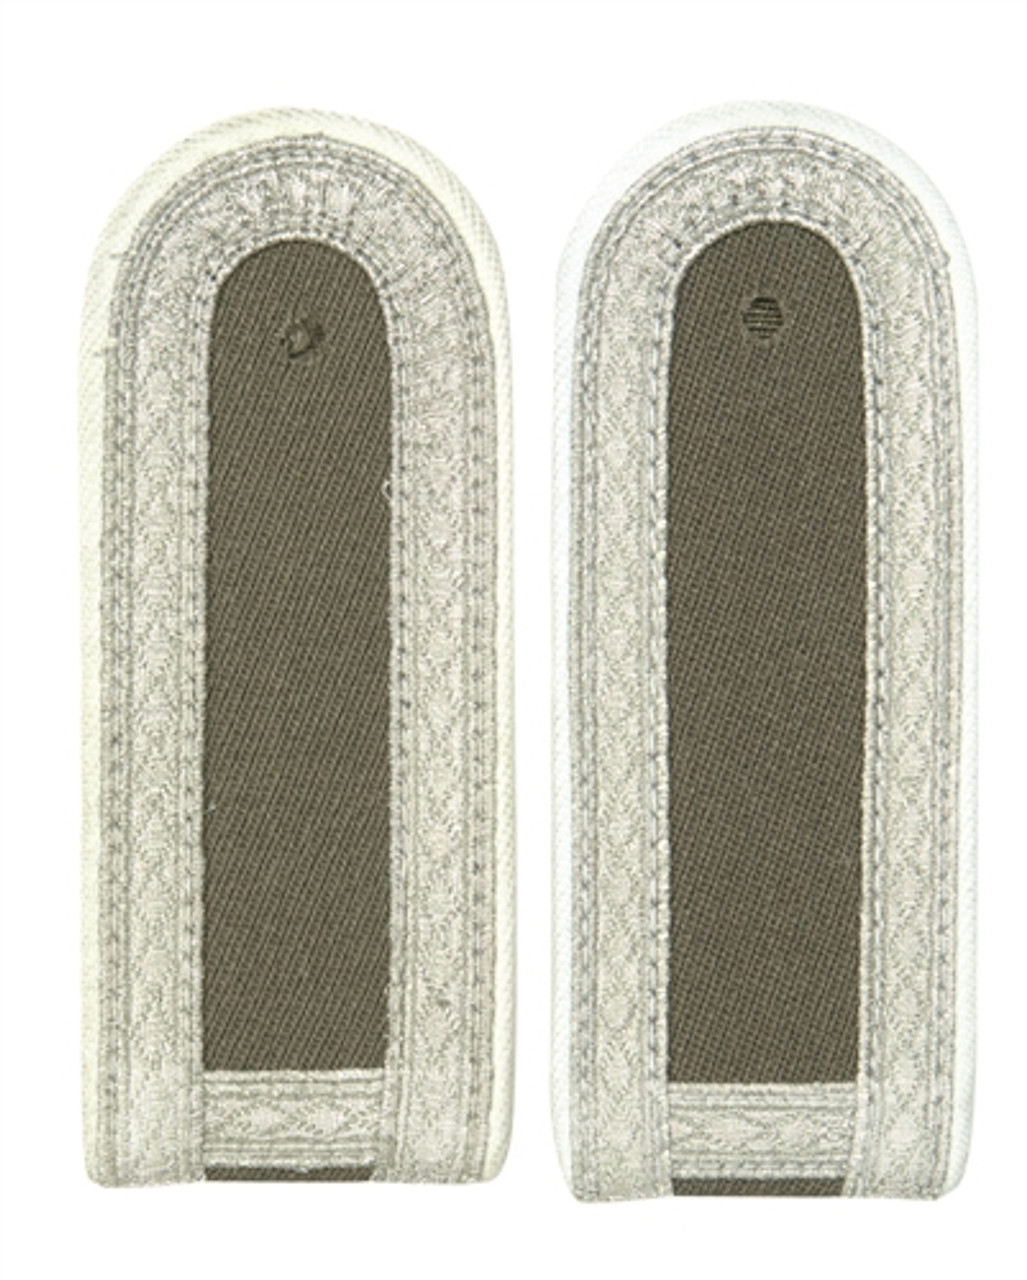 NVA Sr. Enlisted Shoulder Boards - Artillery  from Hessen Surplus